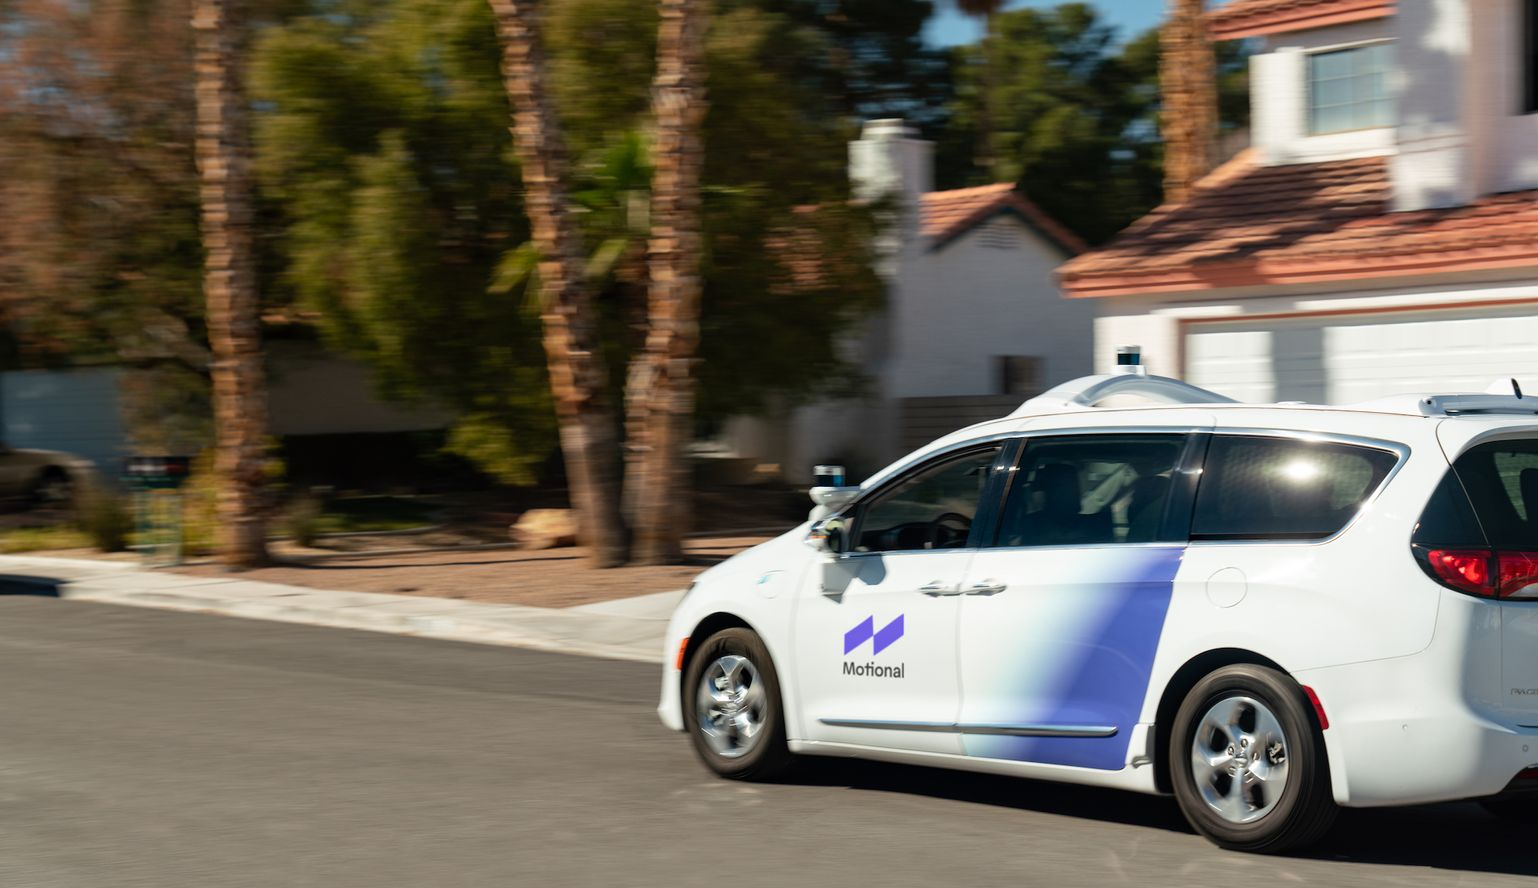 Hyundai's Motional will start testing its robotaxi in Los Angeles this month